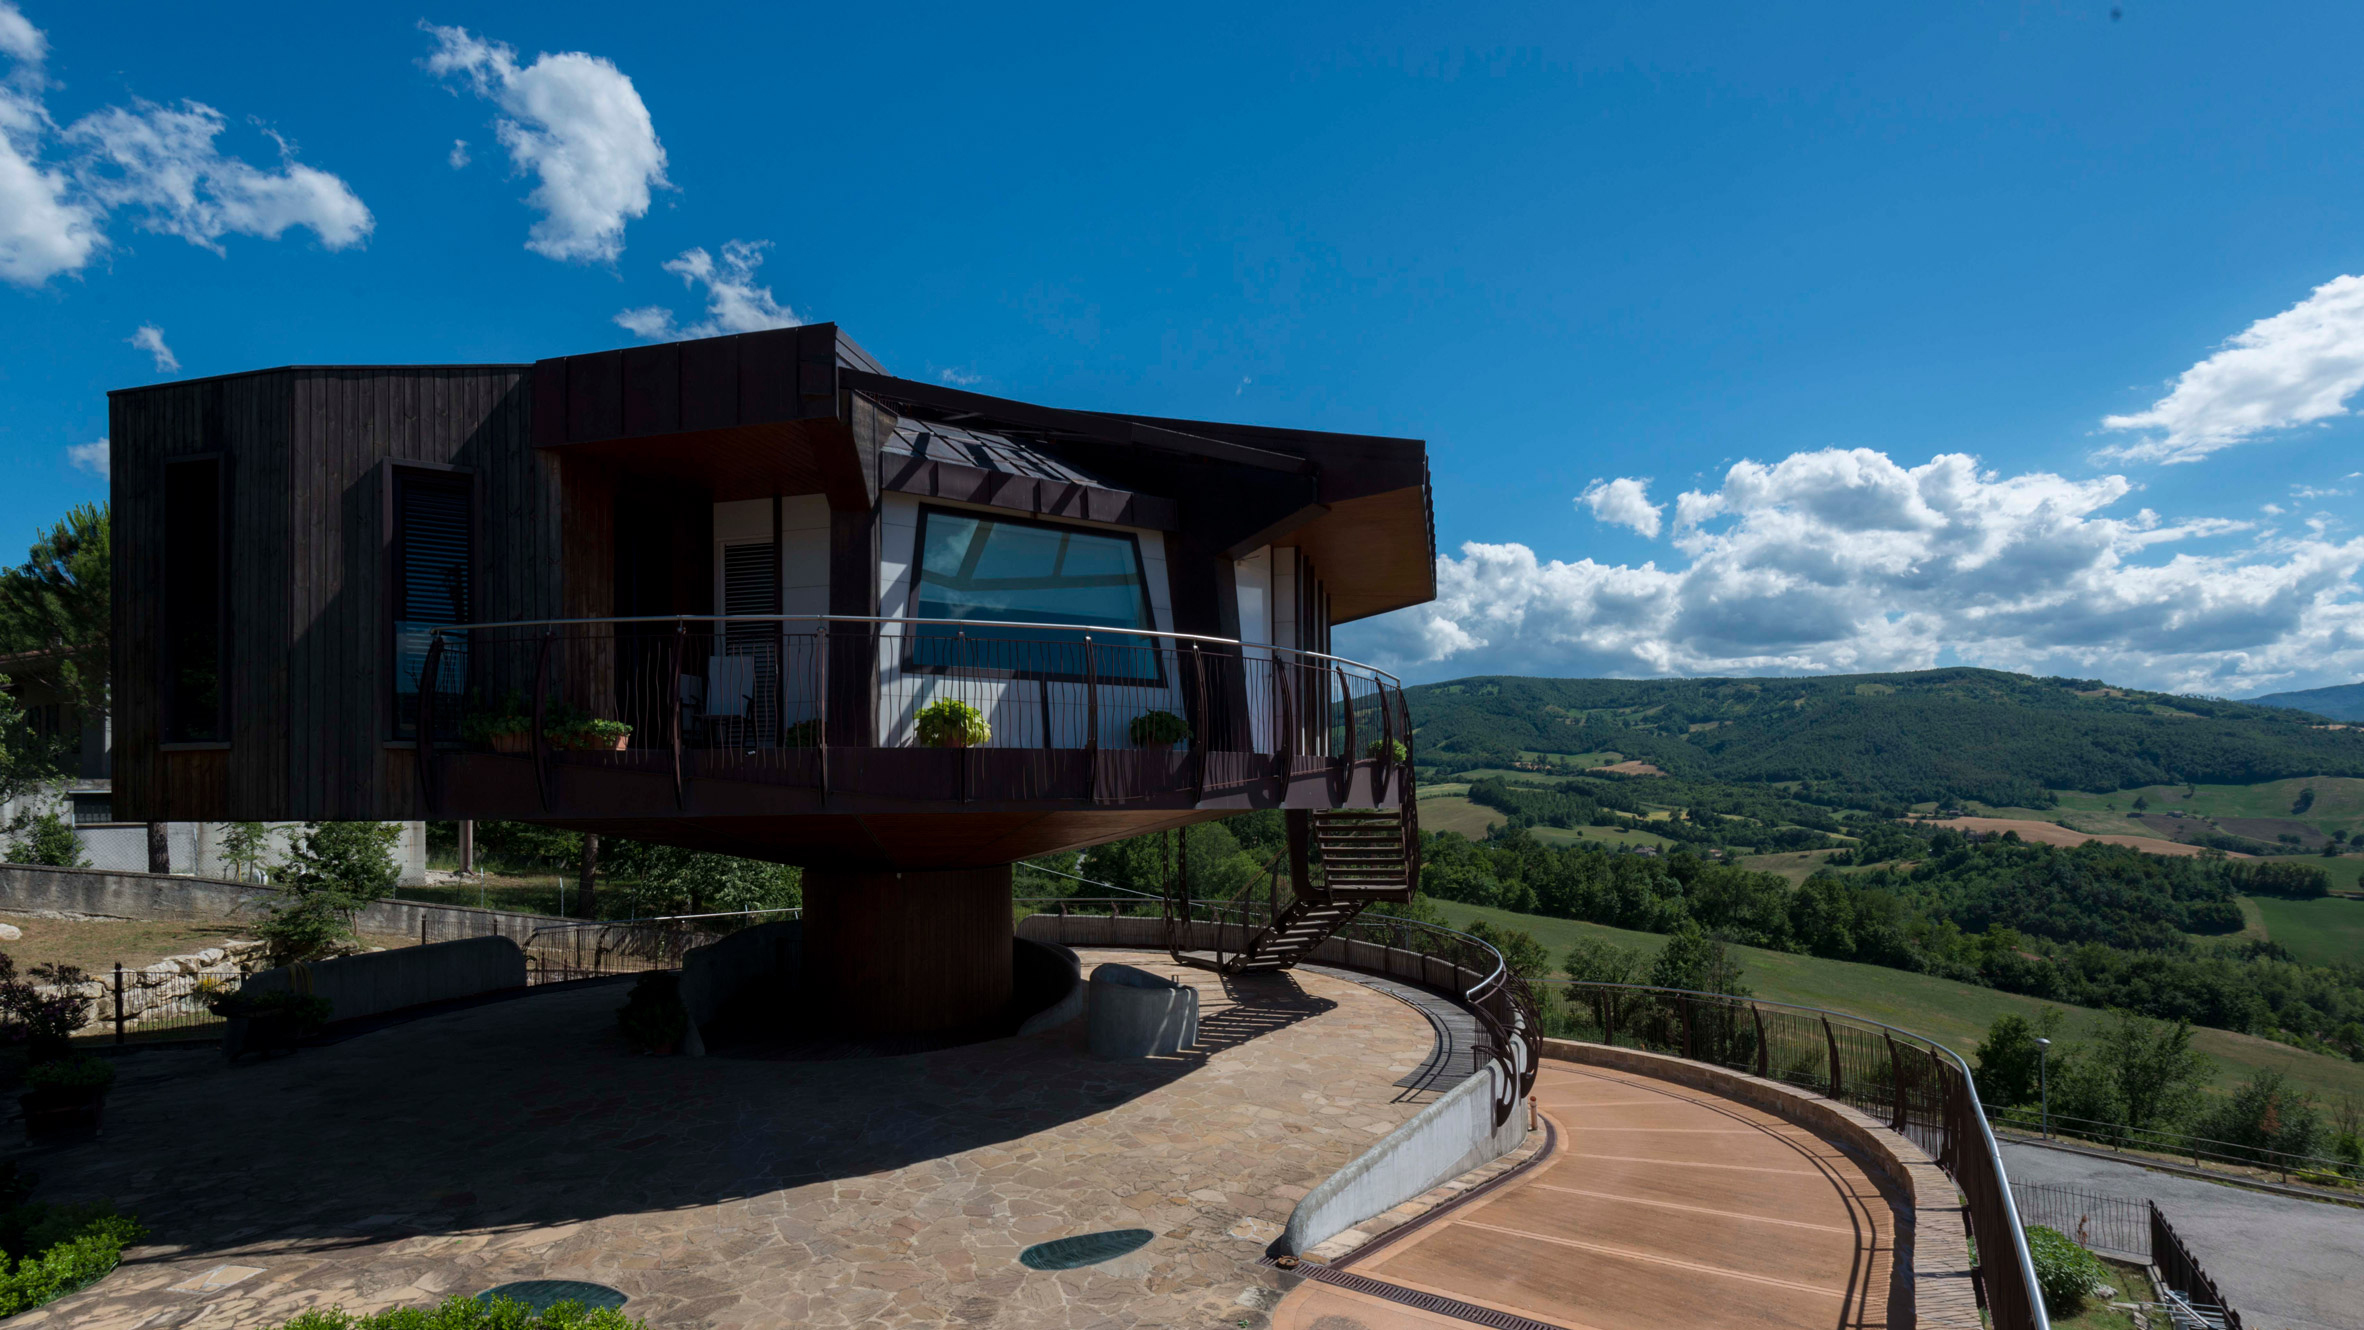 Fully rotating house built in Italian countryside by Roberto